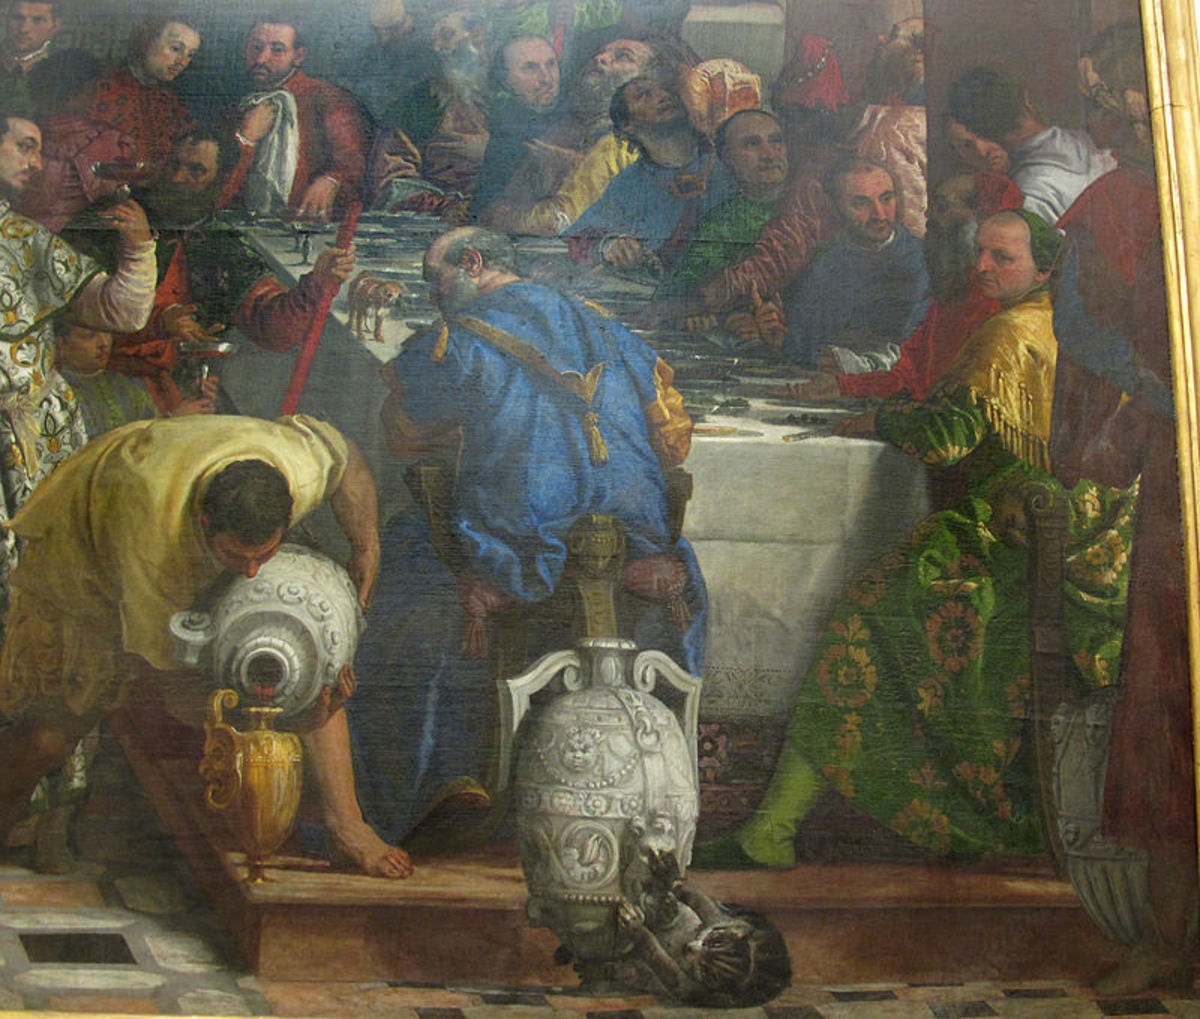 Paolo Veronese, Wedding at Cana, detail of the left side of the banquet (1563), Paris Musée du Louvre